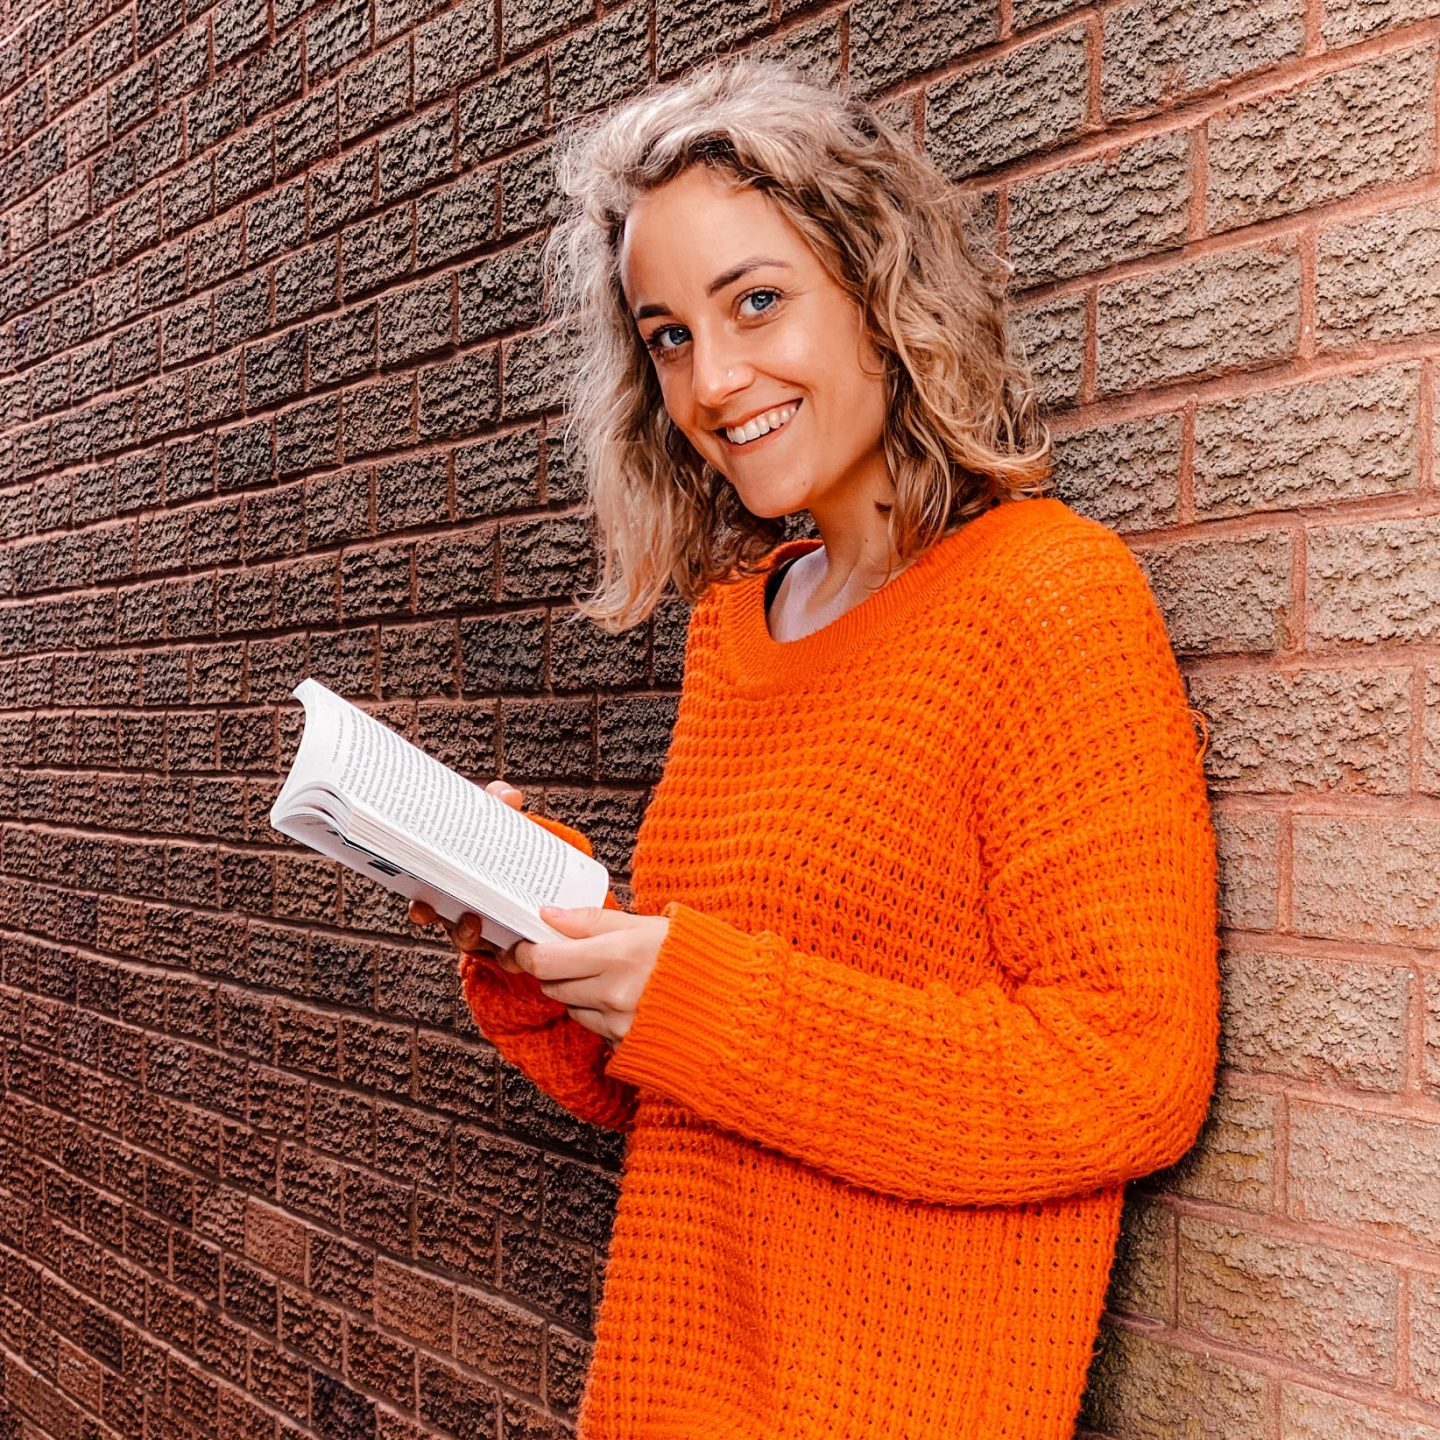 Sarah Smiling leaning against a wall